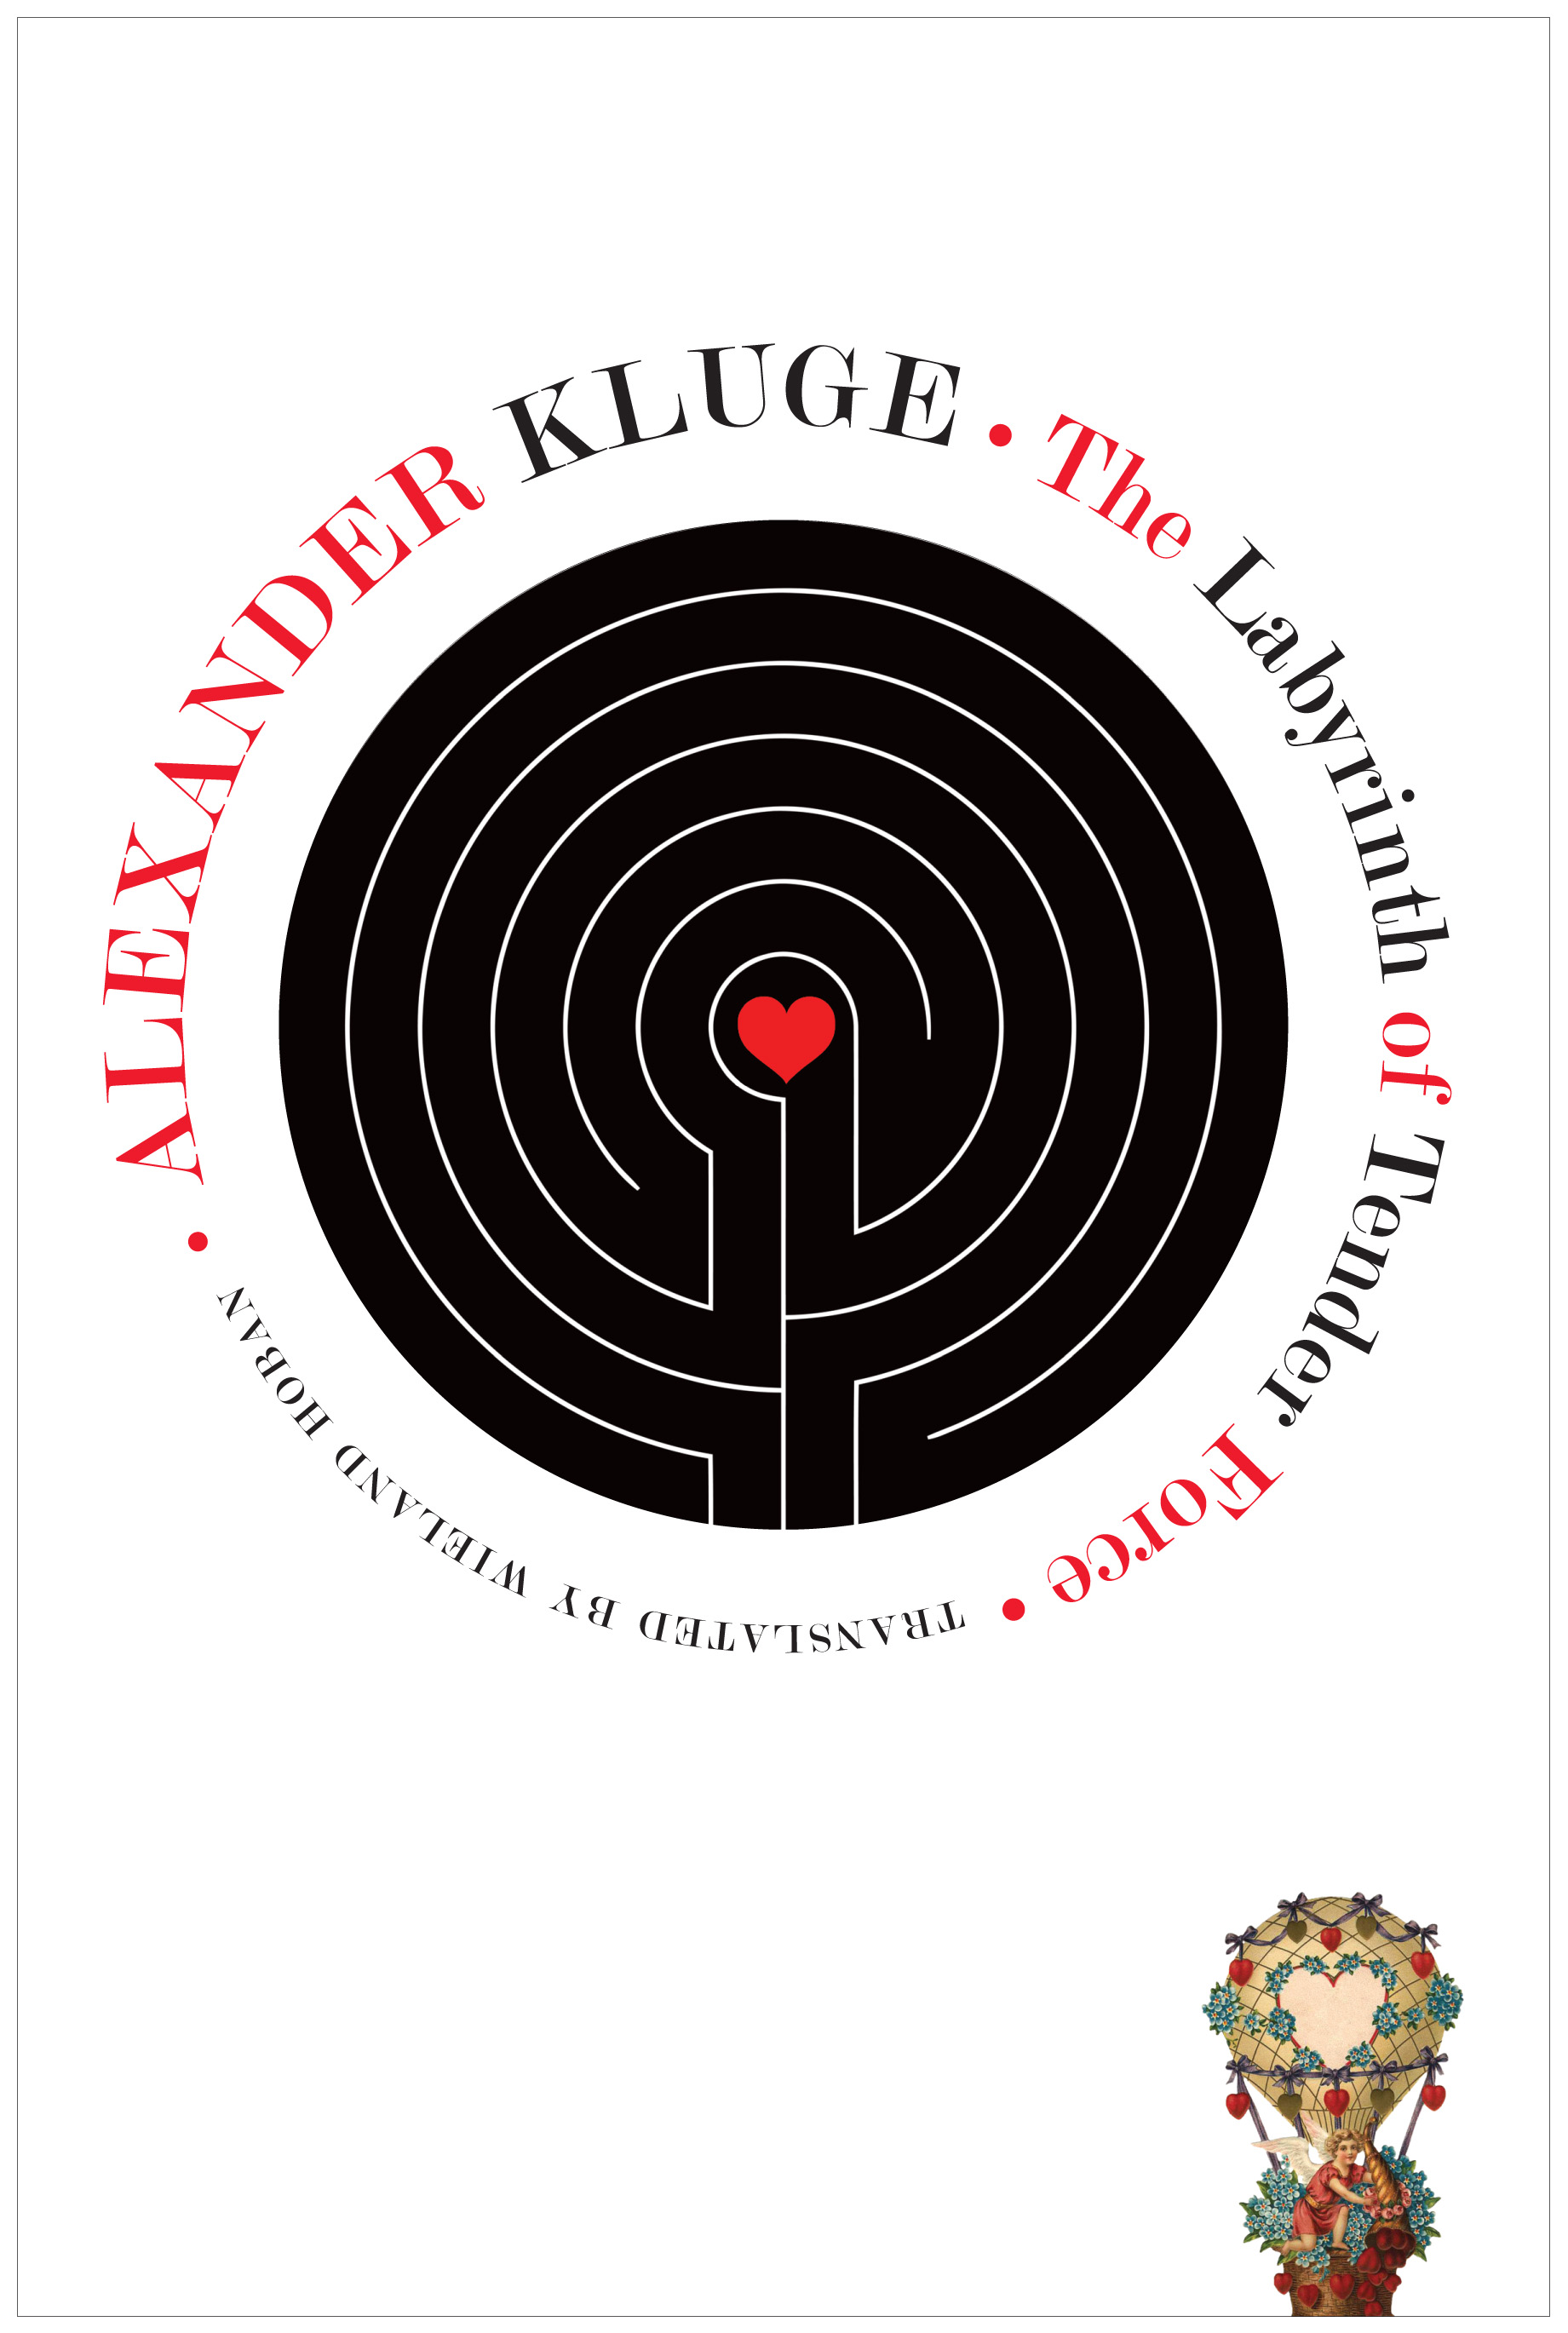 Labyrinth of Tender Force : 166 Love Stories by Alexander Kluge | Seagull Books